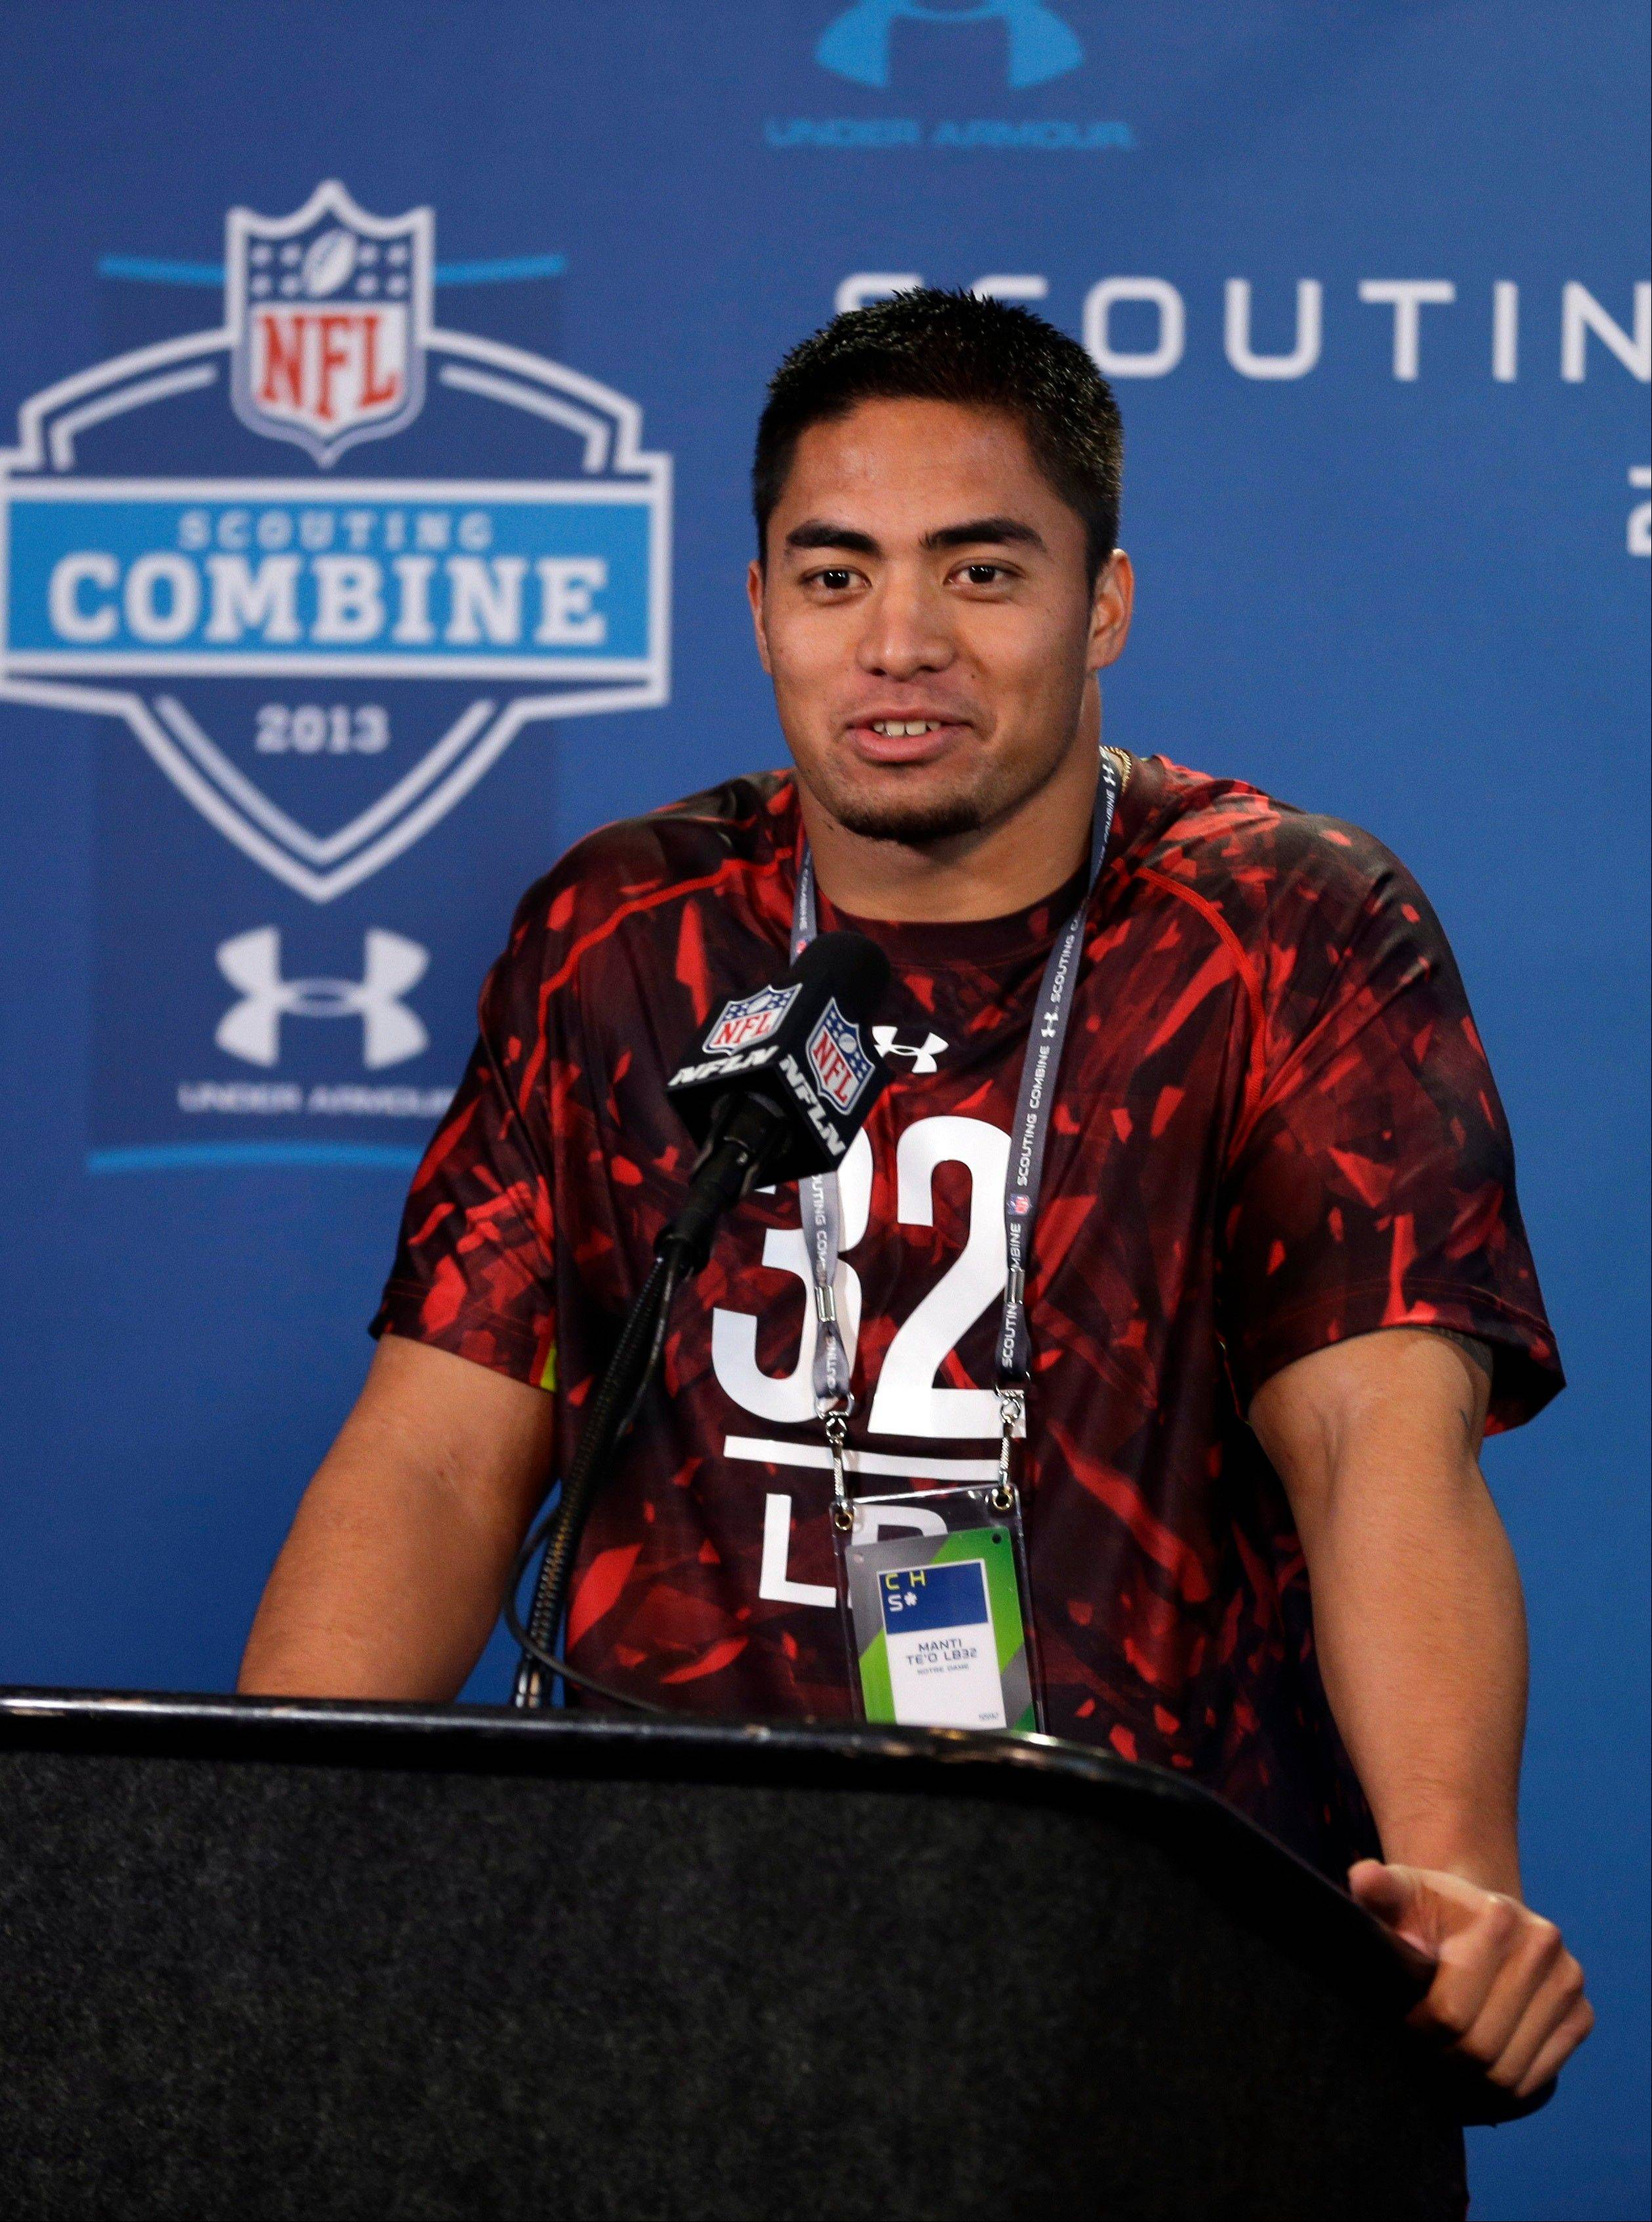 On Saturday at the NFL Scouting Combine, linebacker Manti Te'o answered questions from a throng of reporters about his dead girlfriend that didn't actually exist.